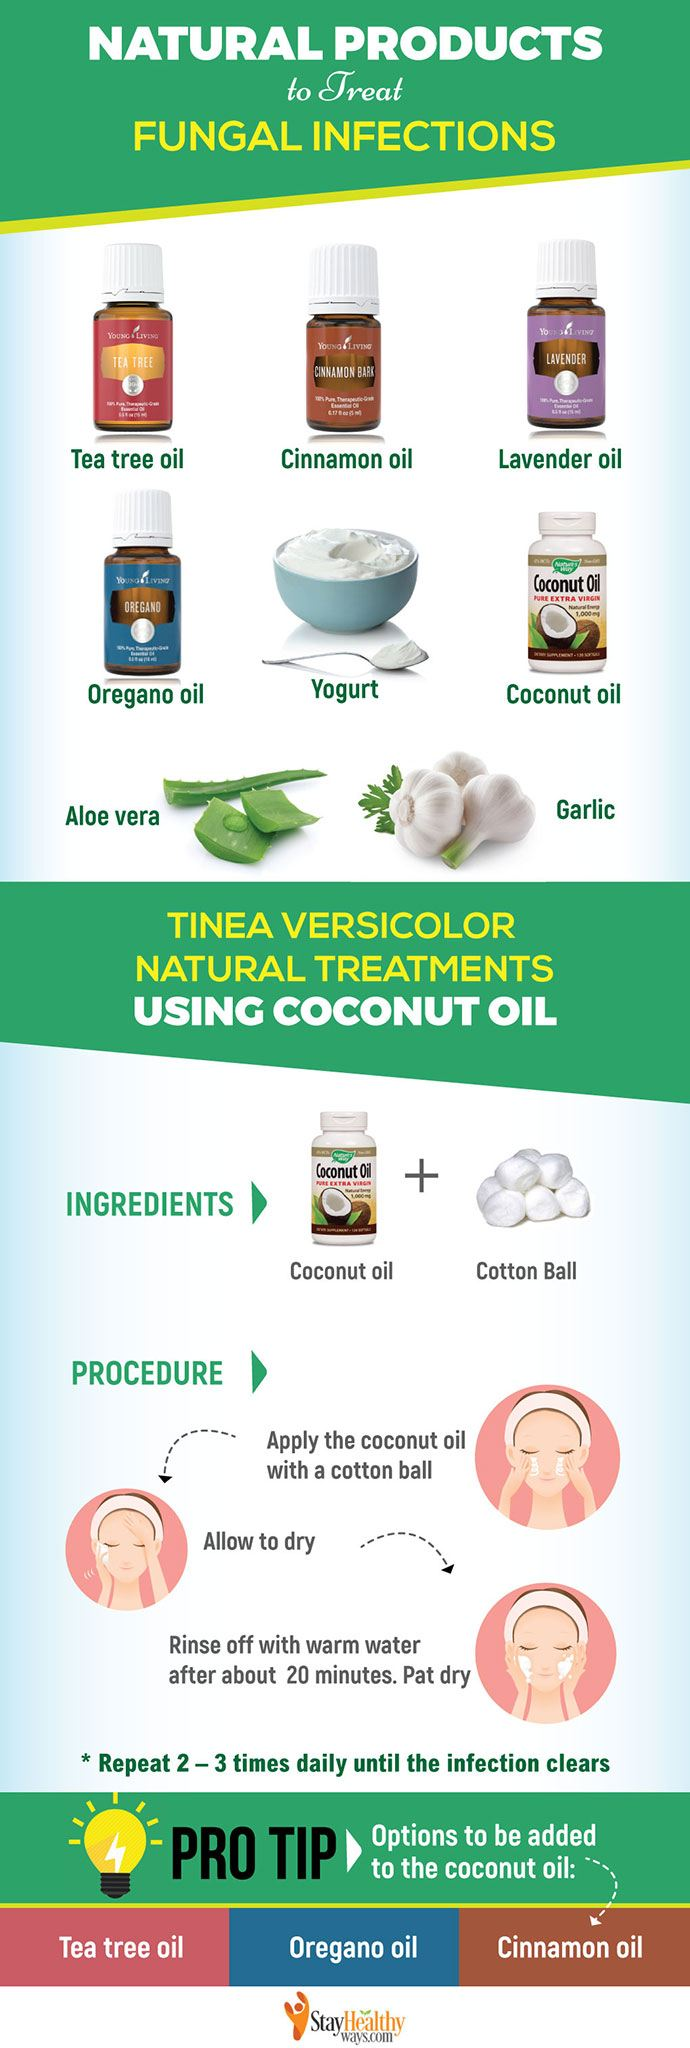 tinea versicolor natural treatment